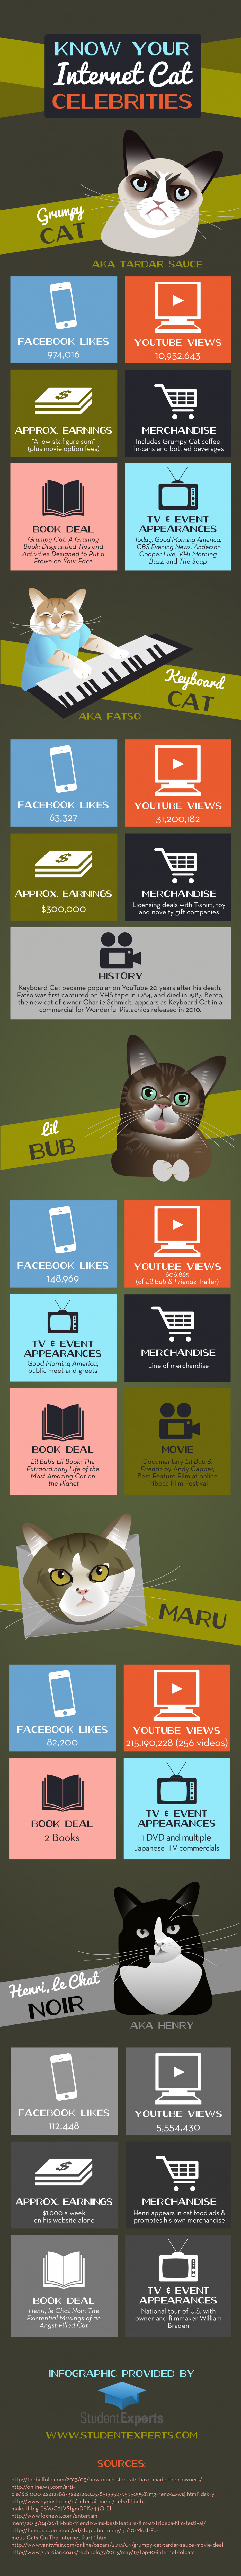 Know Your Internet Cat Celebrities Infographic